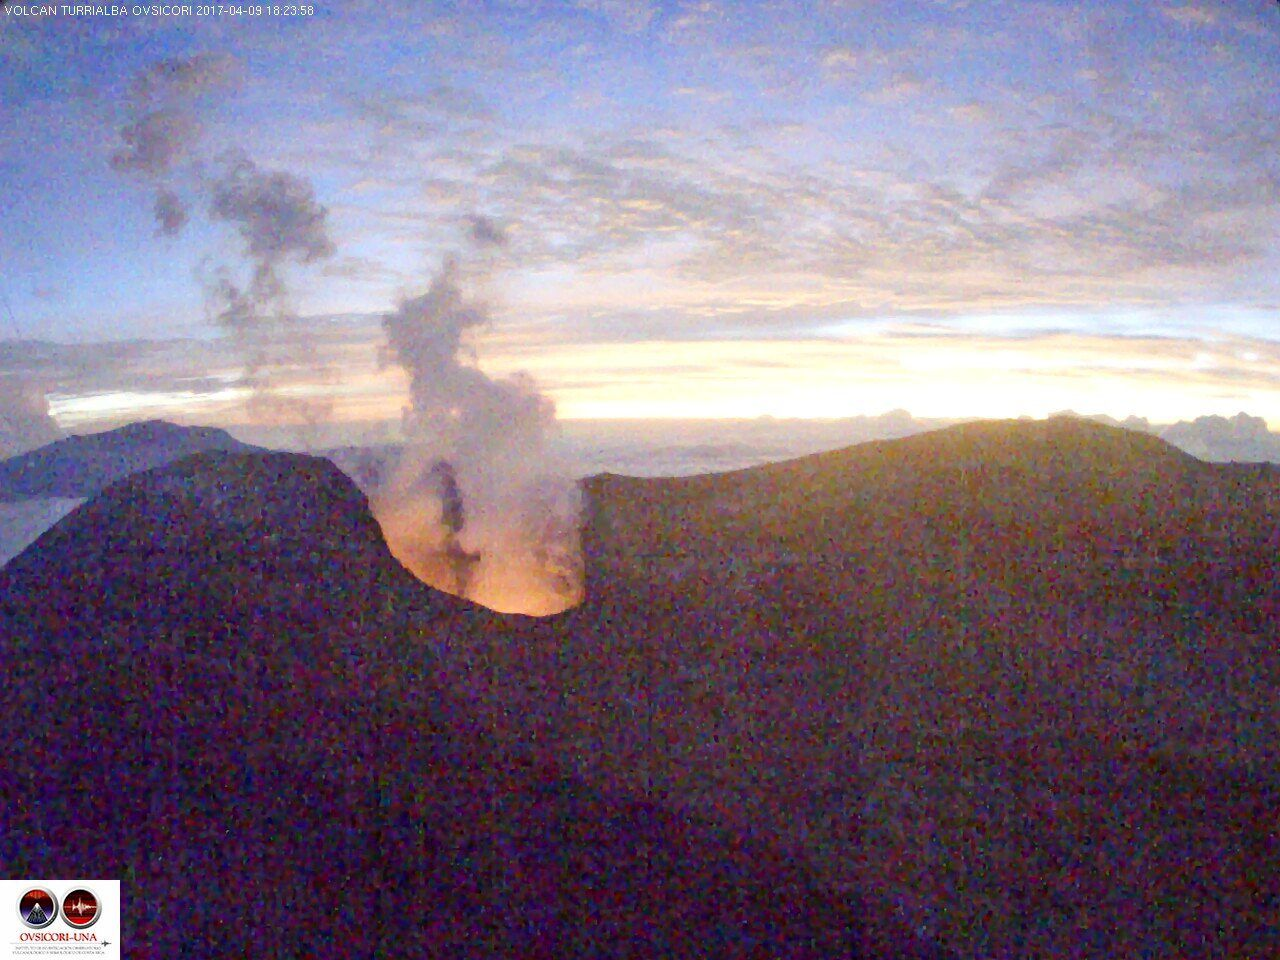 Turrialba - incandescence dans la cratère le 09.04.2017 / 18h24 - webcam Ovsicori